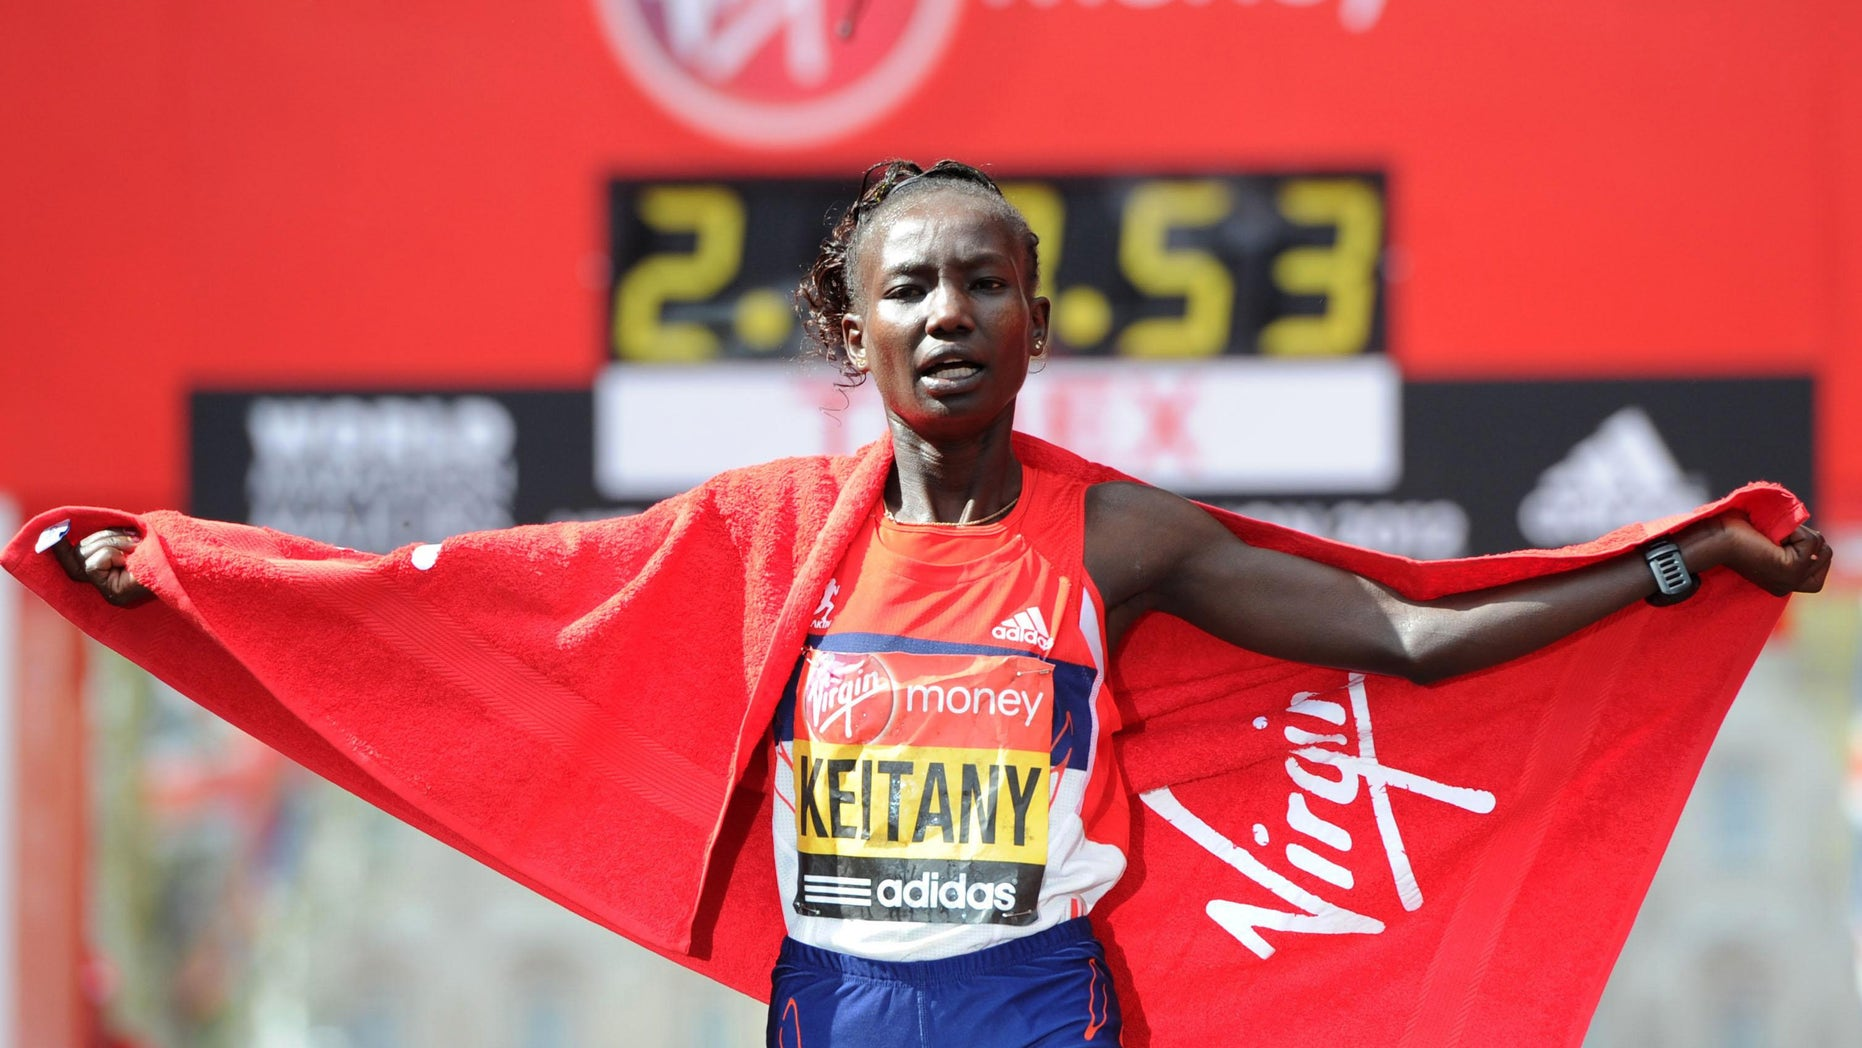 April 22, 2012: Kenya's Mary Keitany celebrates winning the women's race during the 2012 London Marathon for the second year during the 32nd London Marathon in London.